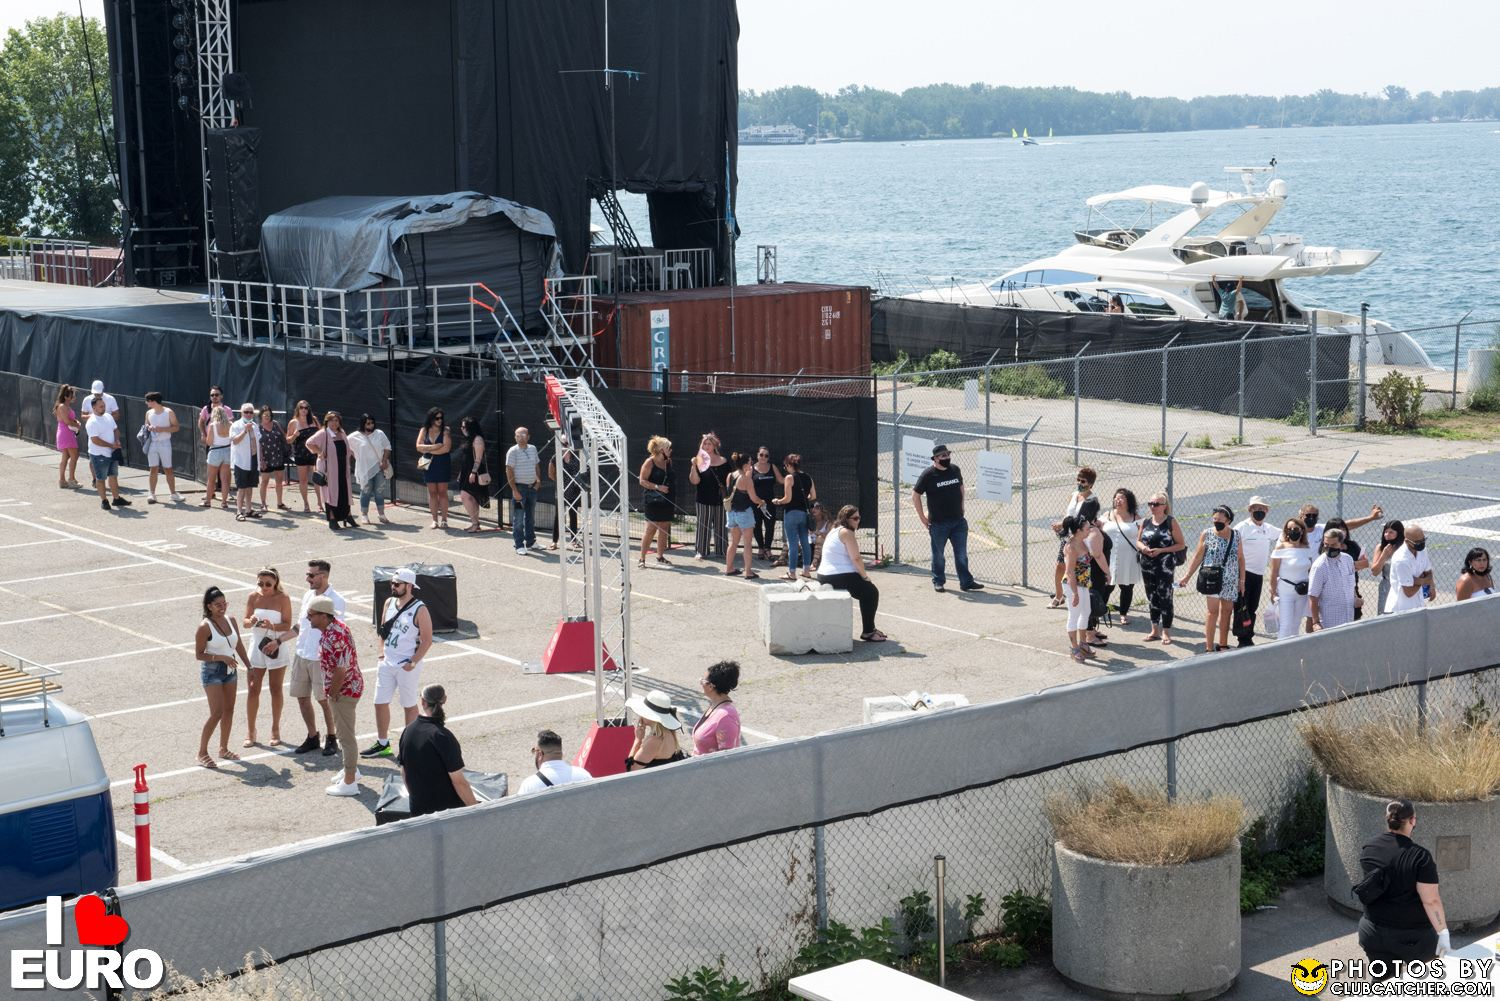 Empress Of Canada party venue photo 87 - August 22nd, 2021